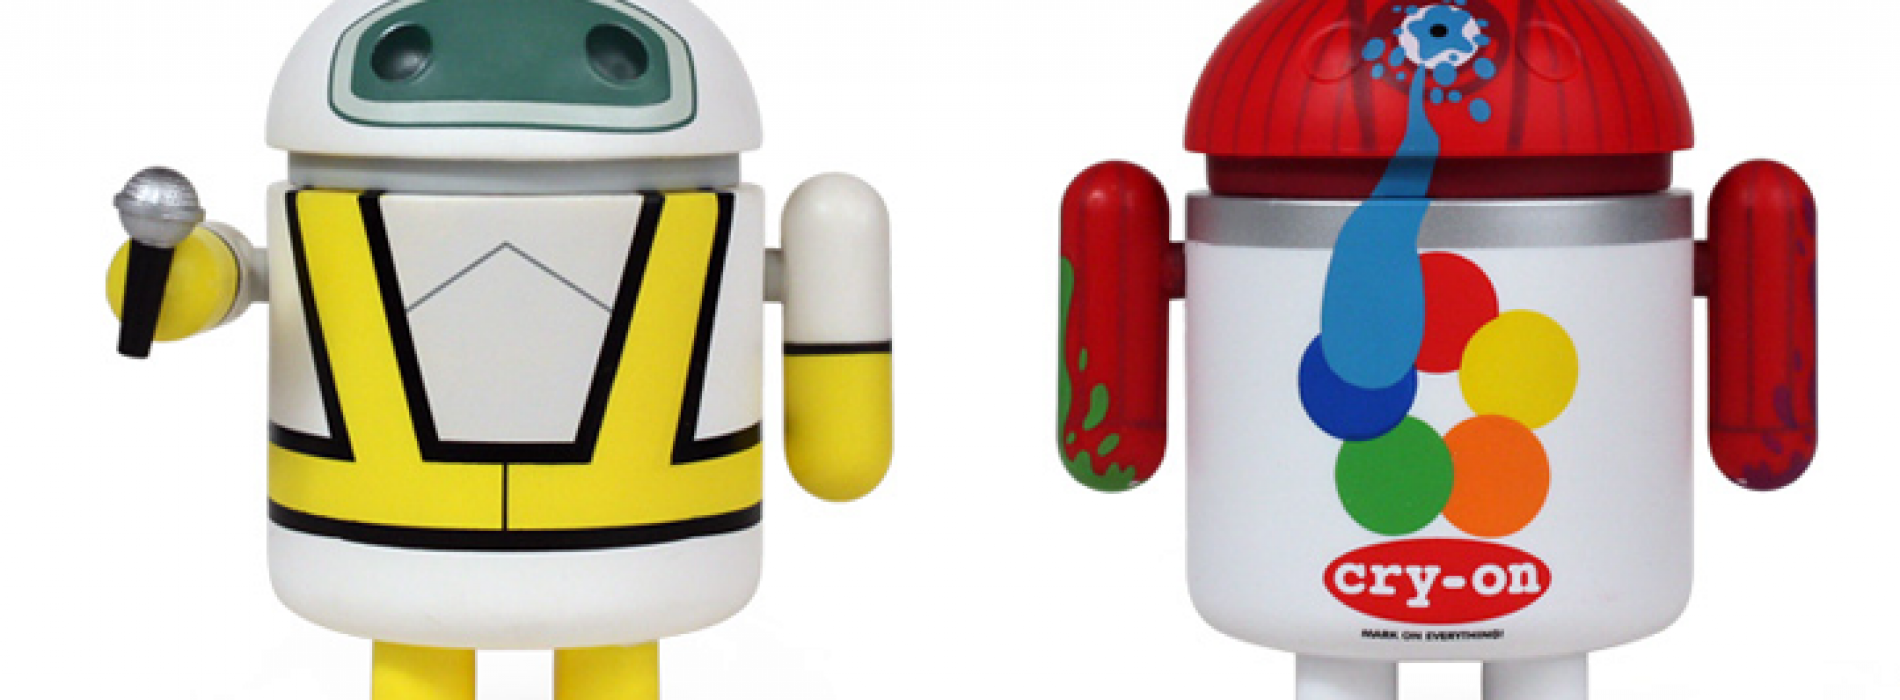 Dyzplastic previews Intergalactic and Cry-On collectible figures